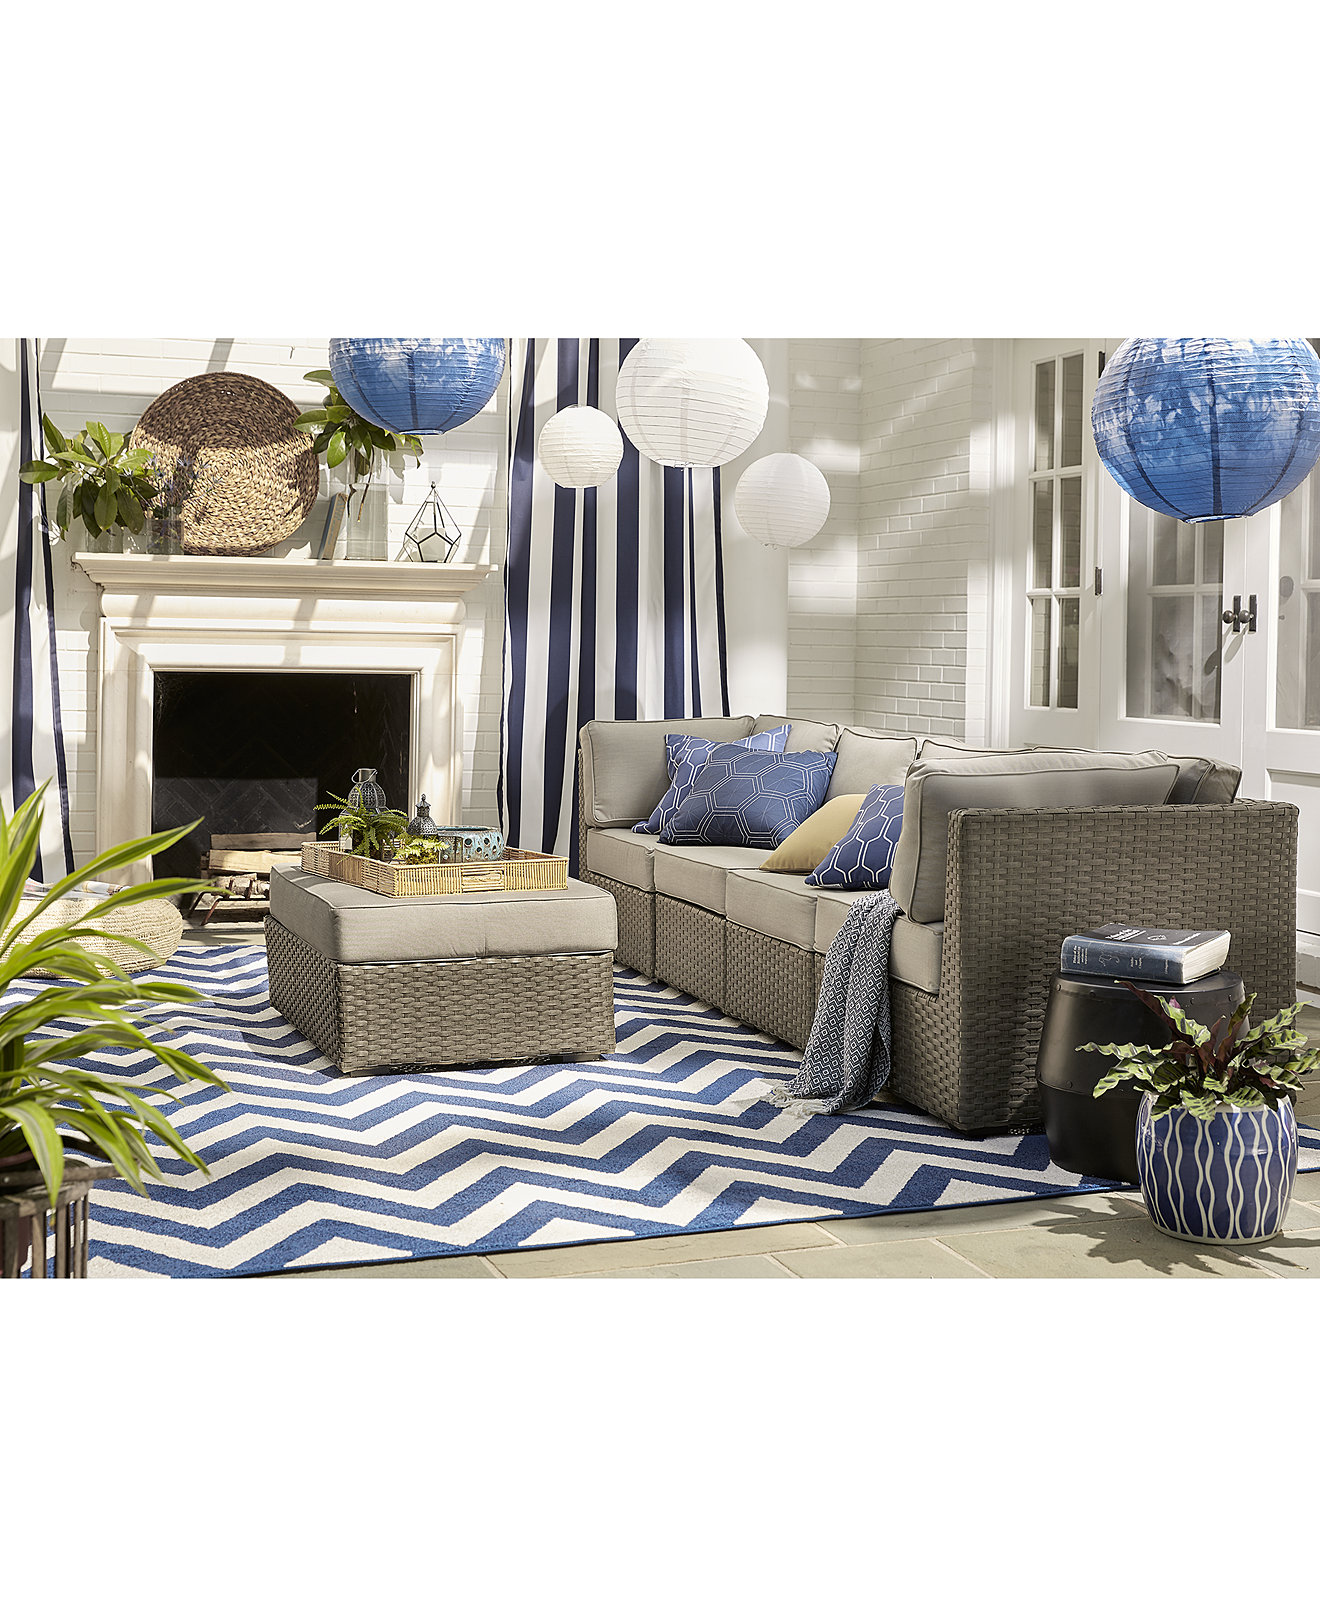 Rooms To Go Living Room Set With Tv Outdoor And Patio Furniture Macys